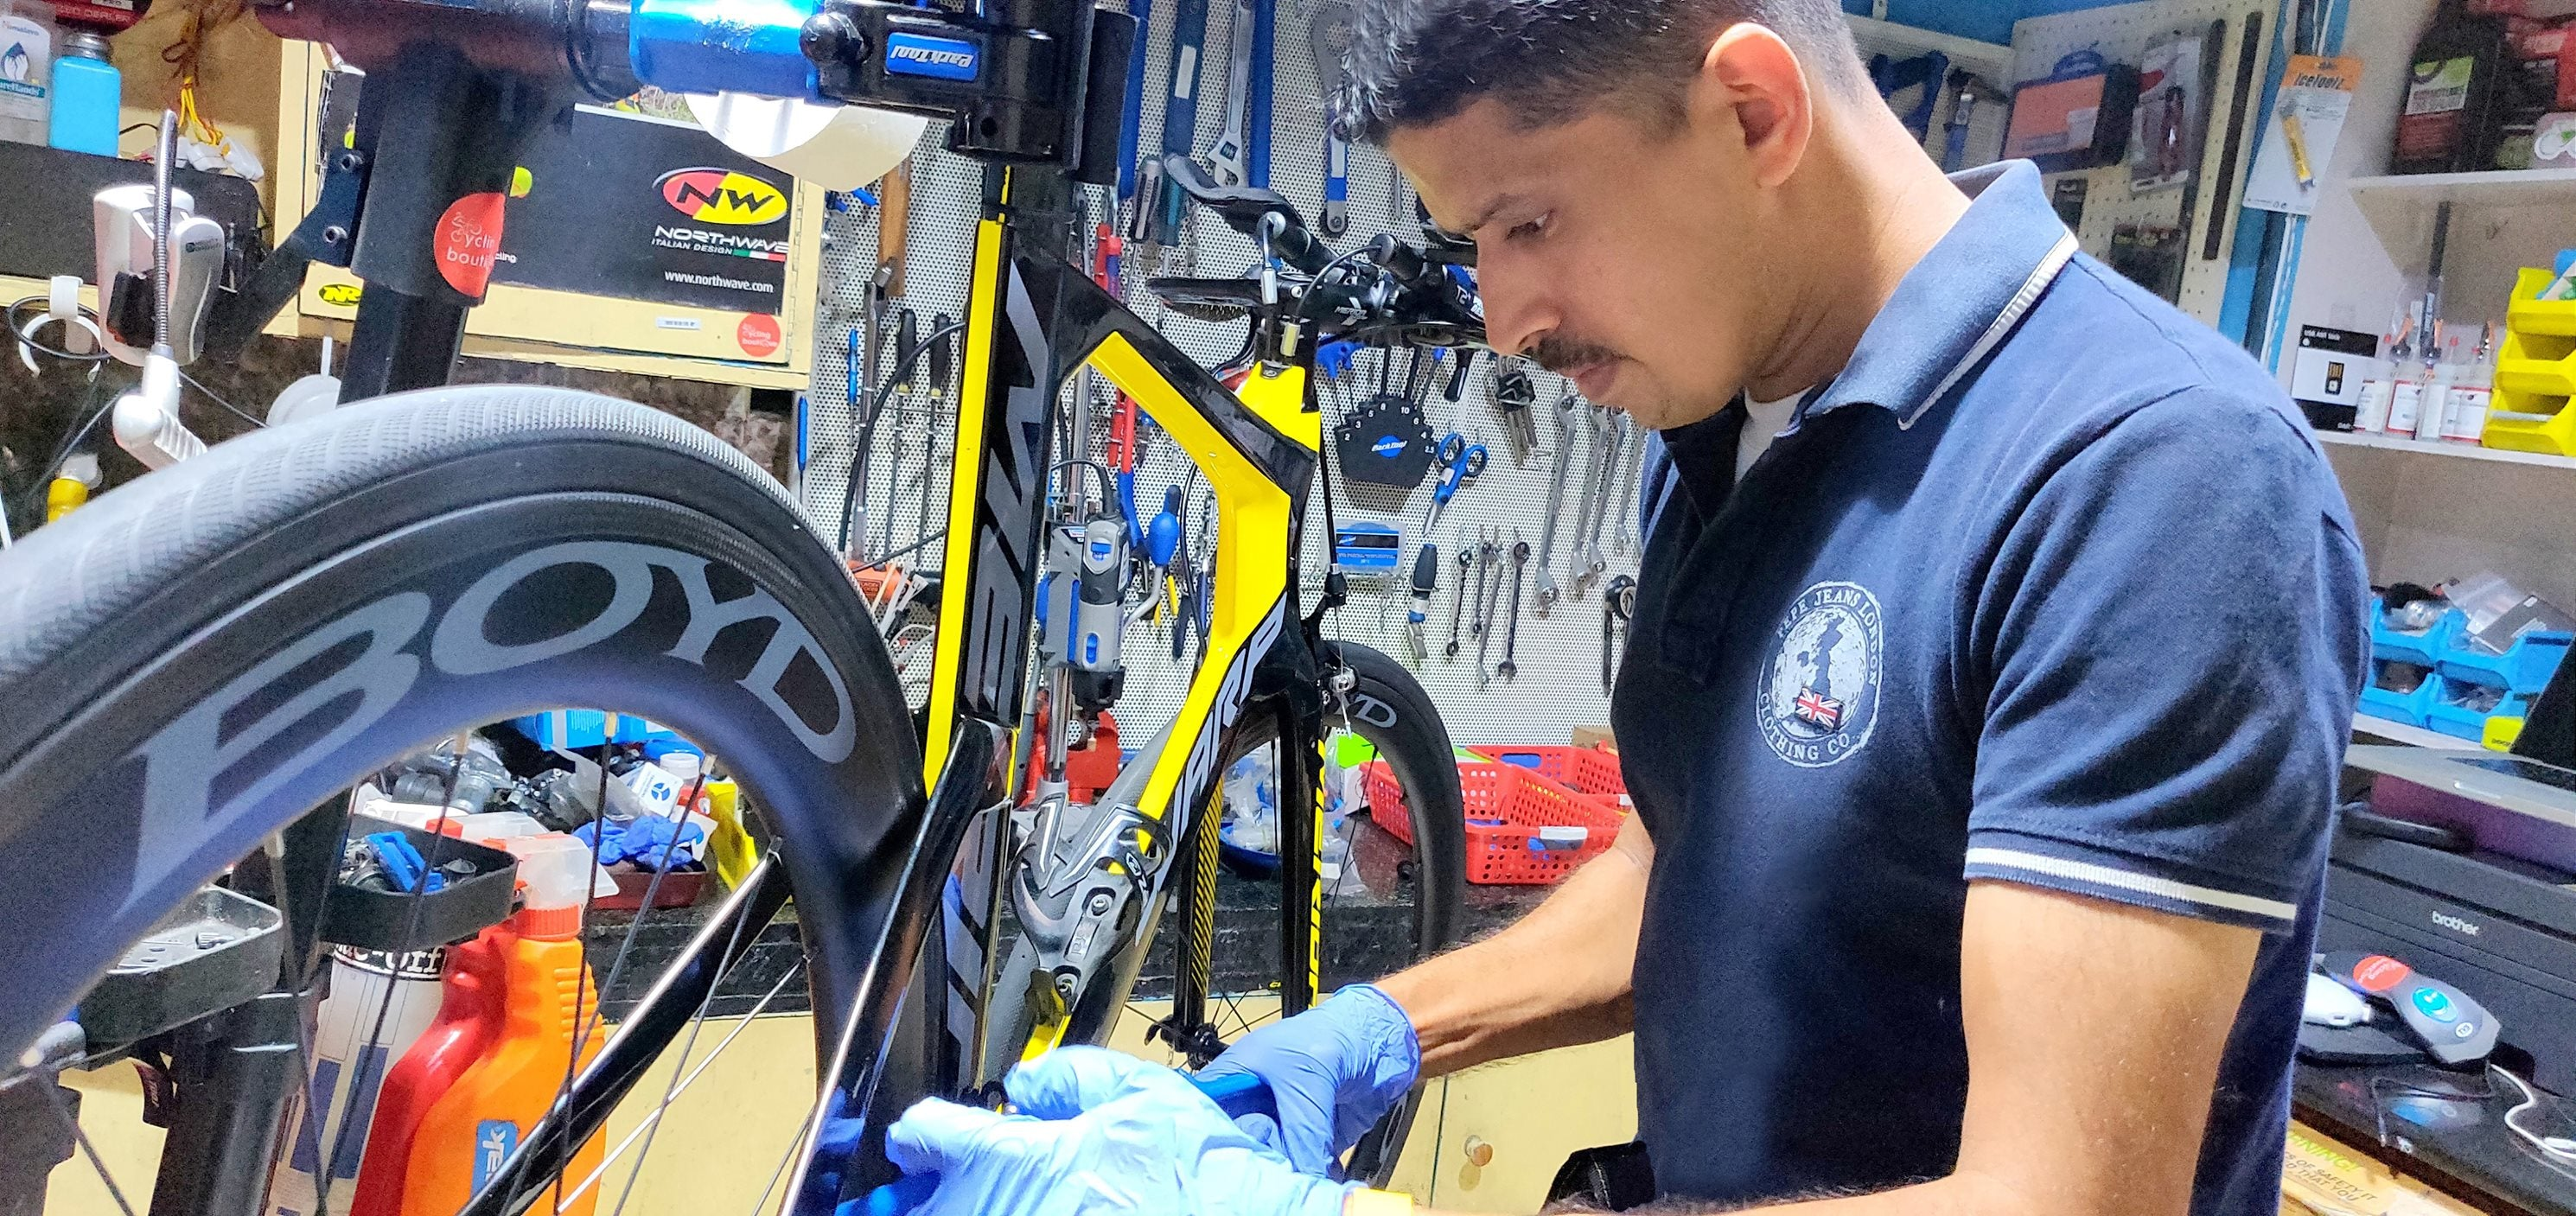 Biju Kunnappada working on Merida Warp Carbon TT Bike